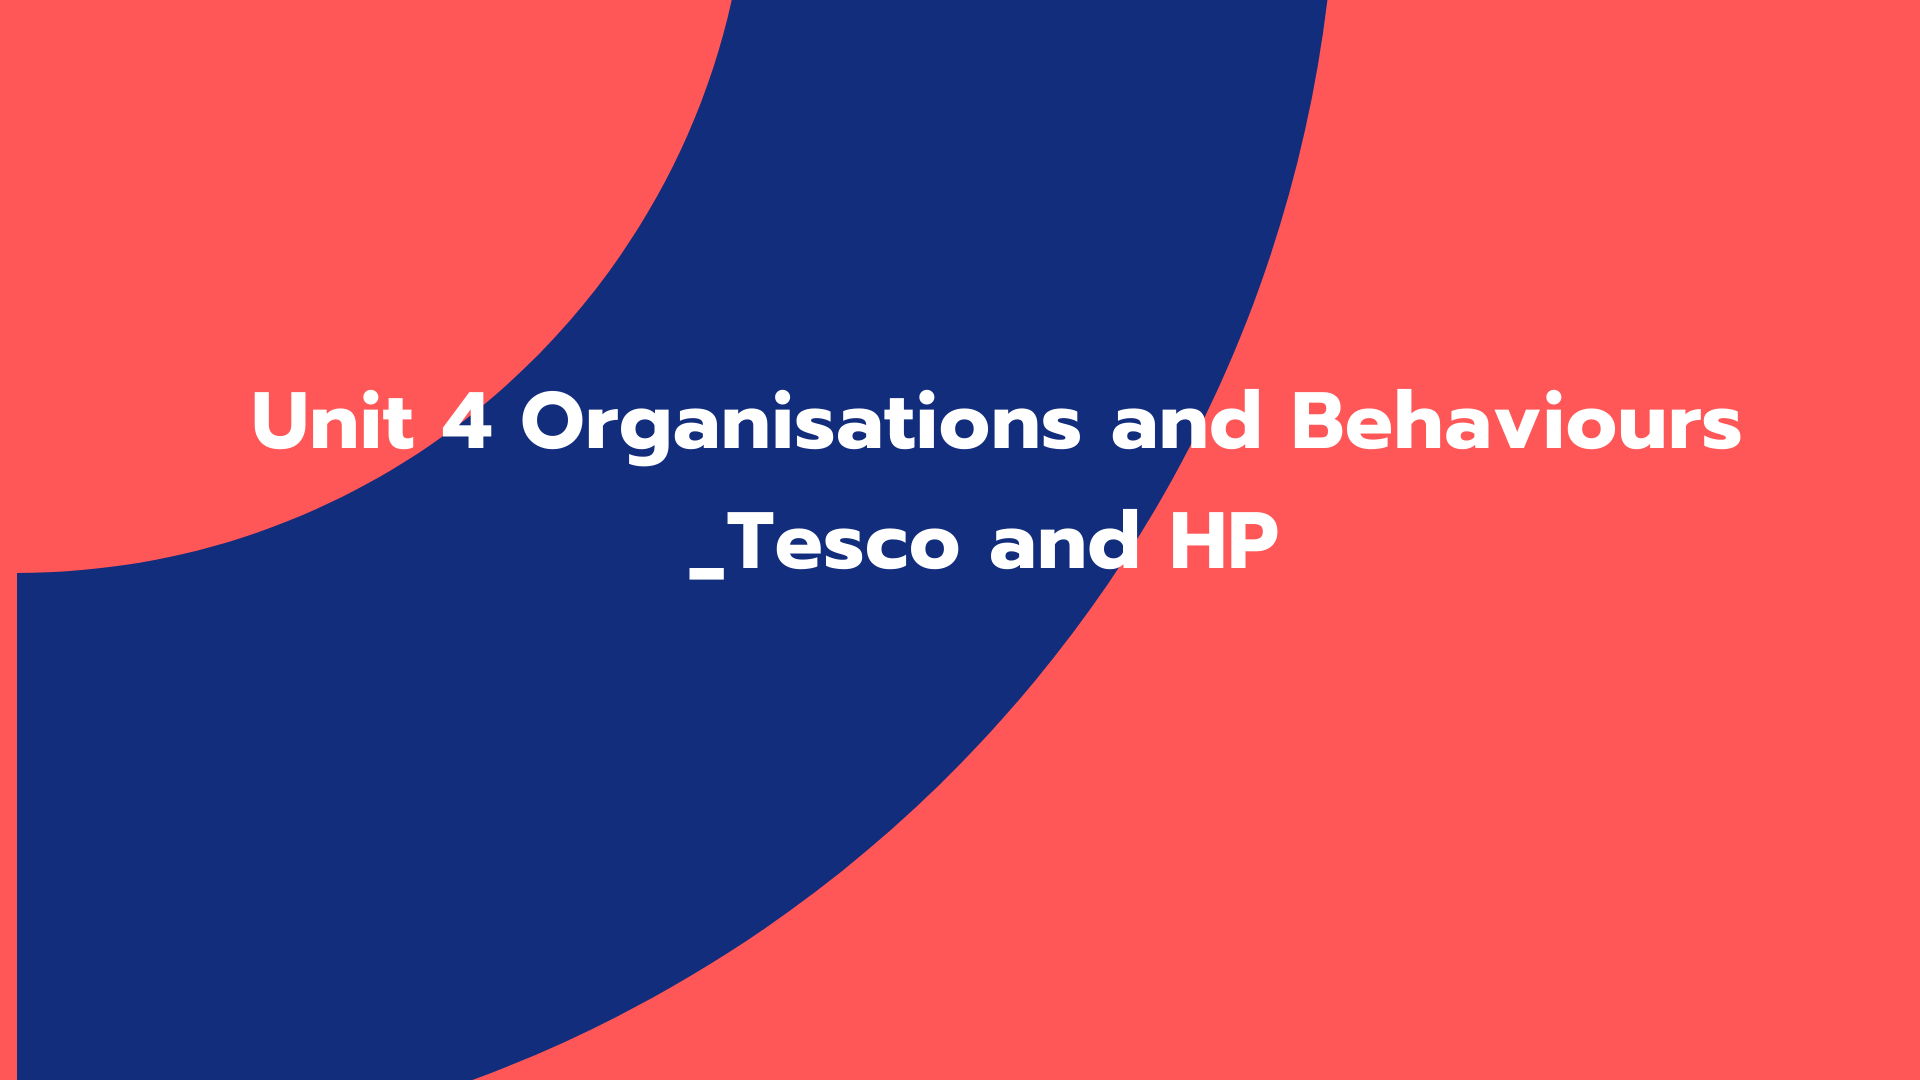 Unit 4 Organisations and Behaviours _Tesco and HP